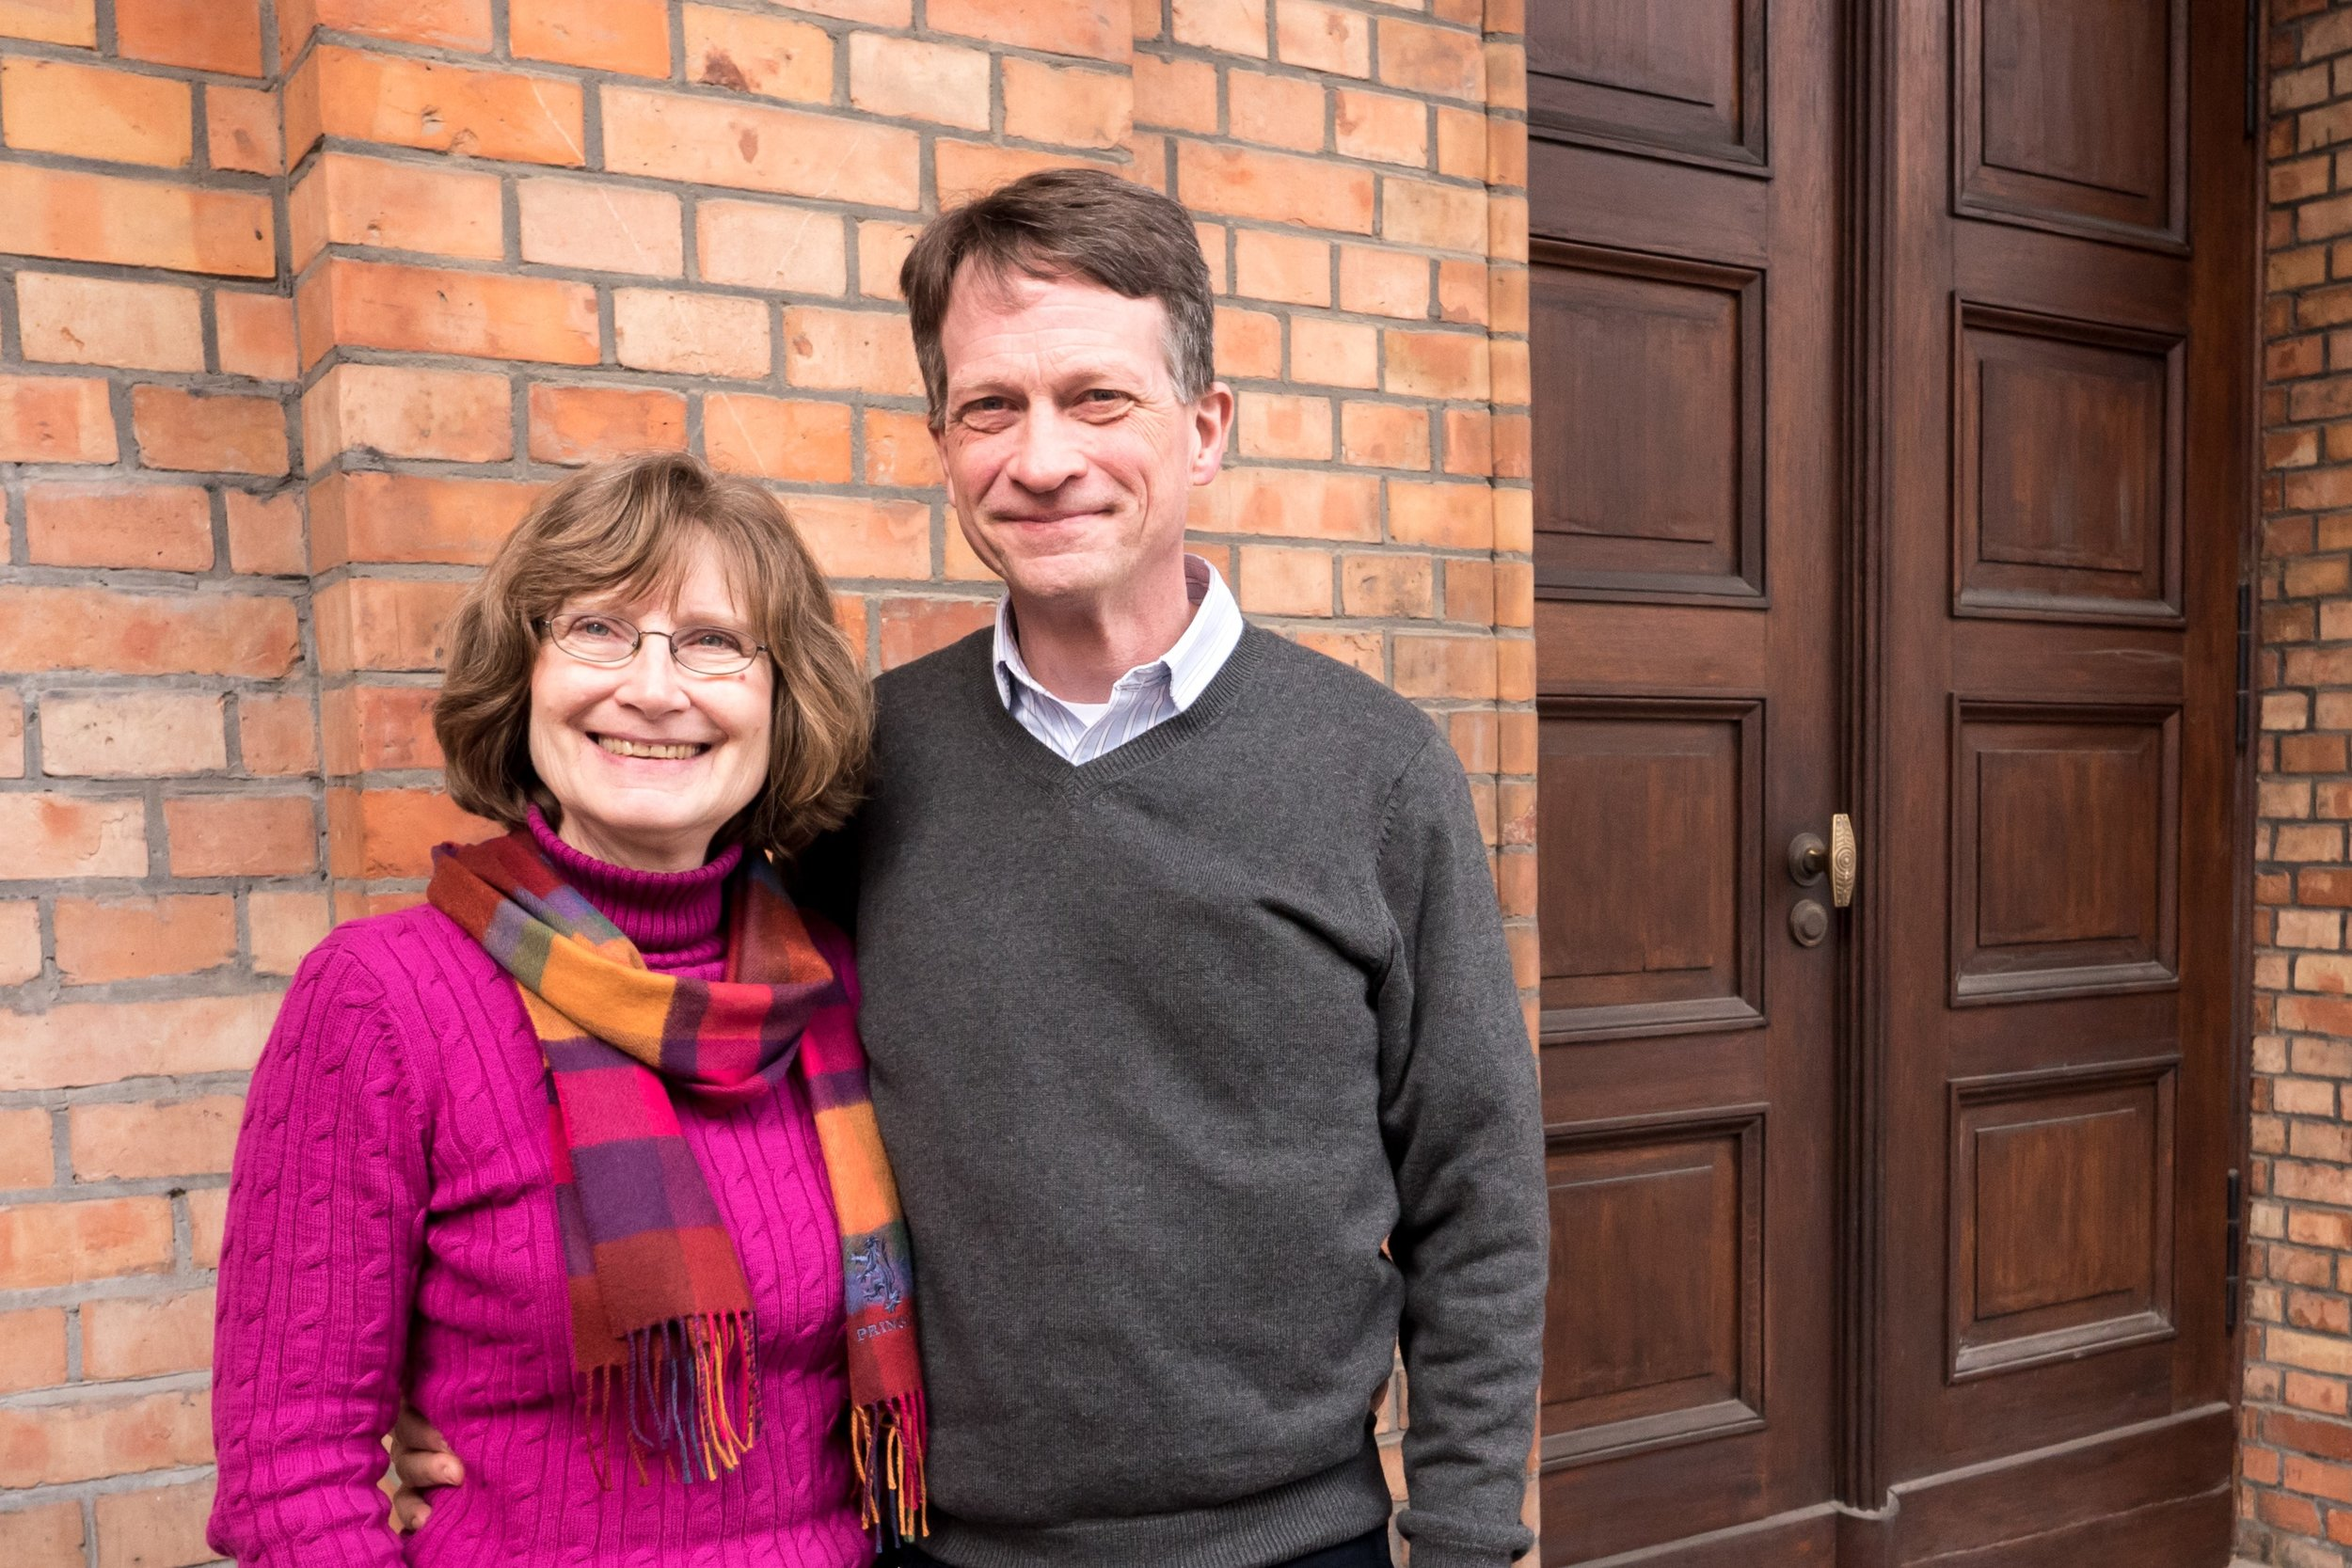 Click here to learn more about David and Mary